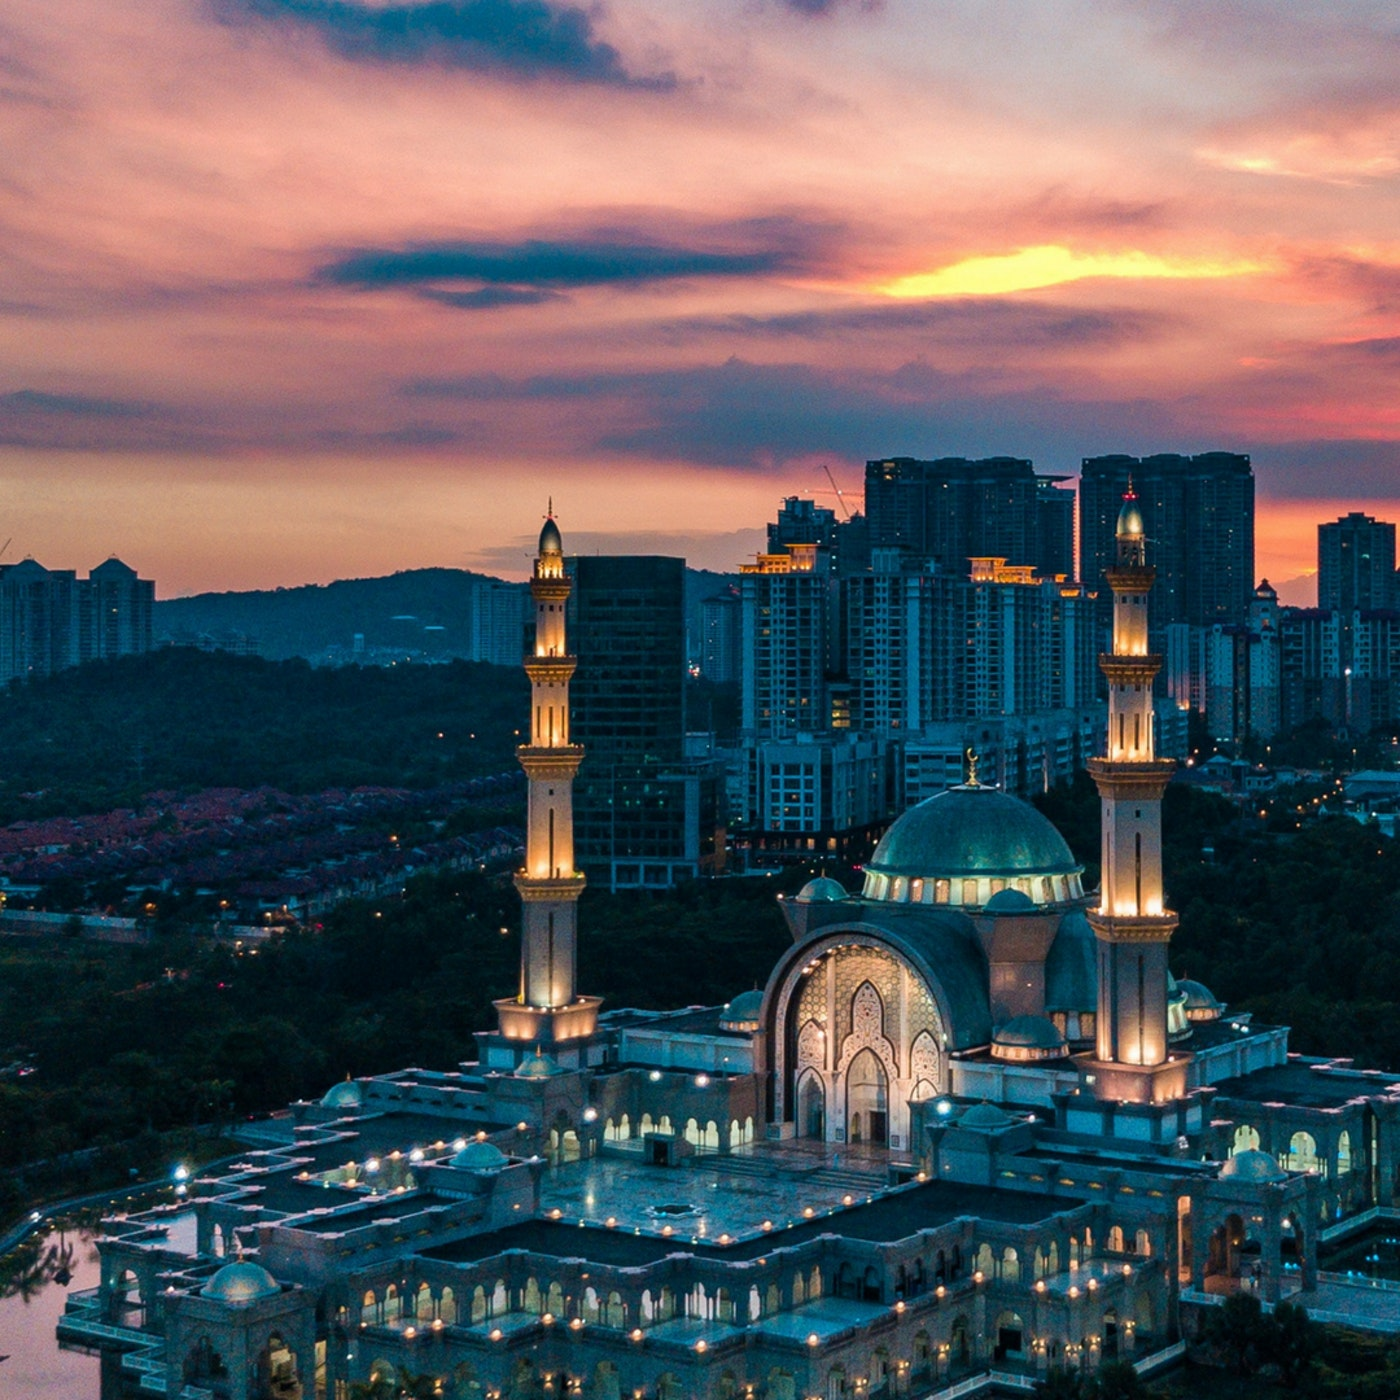 The Beginners Guide to Praying Taraweeh at the Mosque | Amaliah